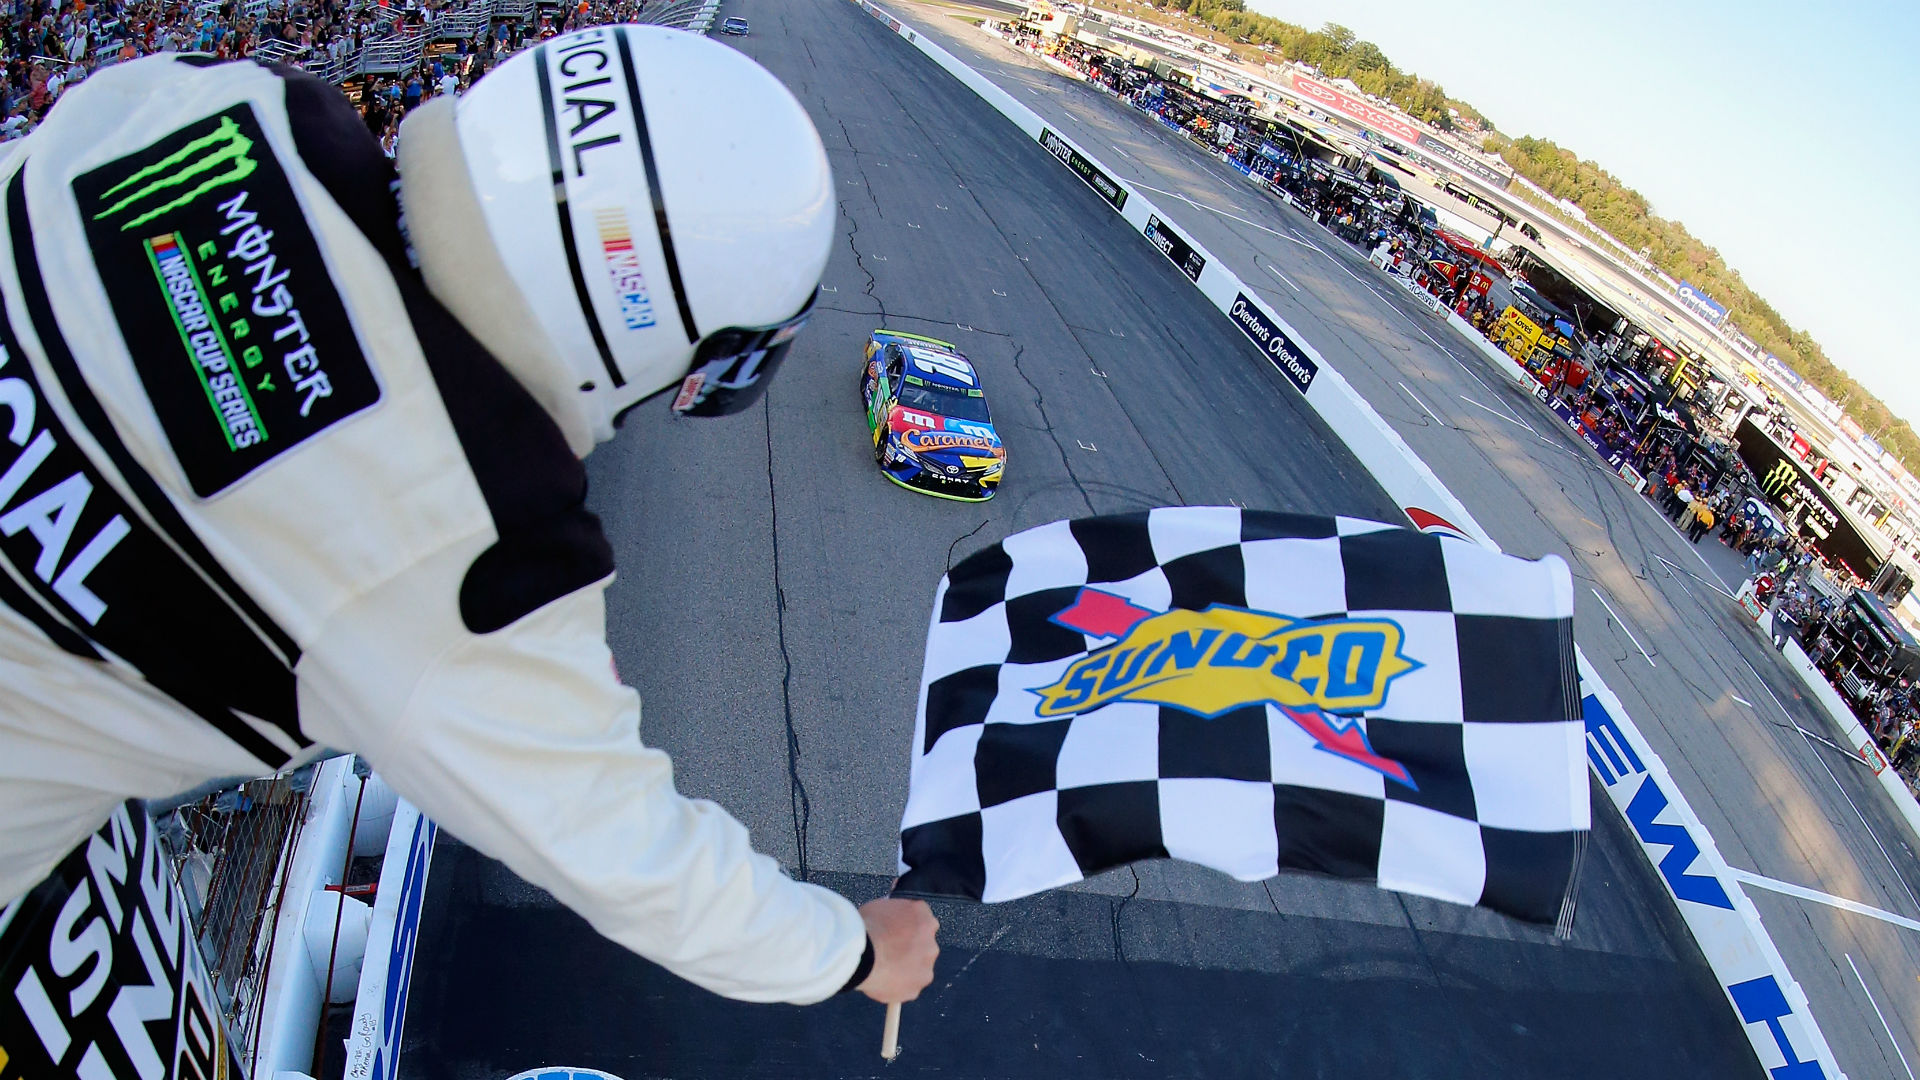 Nascar results at new hampshire kyle busch wins in ism connect 300 advances in playoffs nascar sporting news